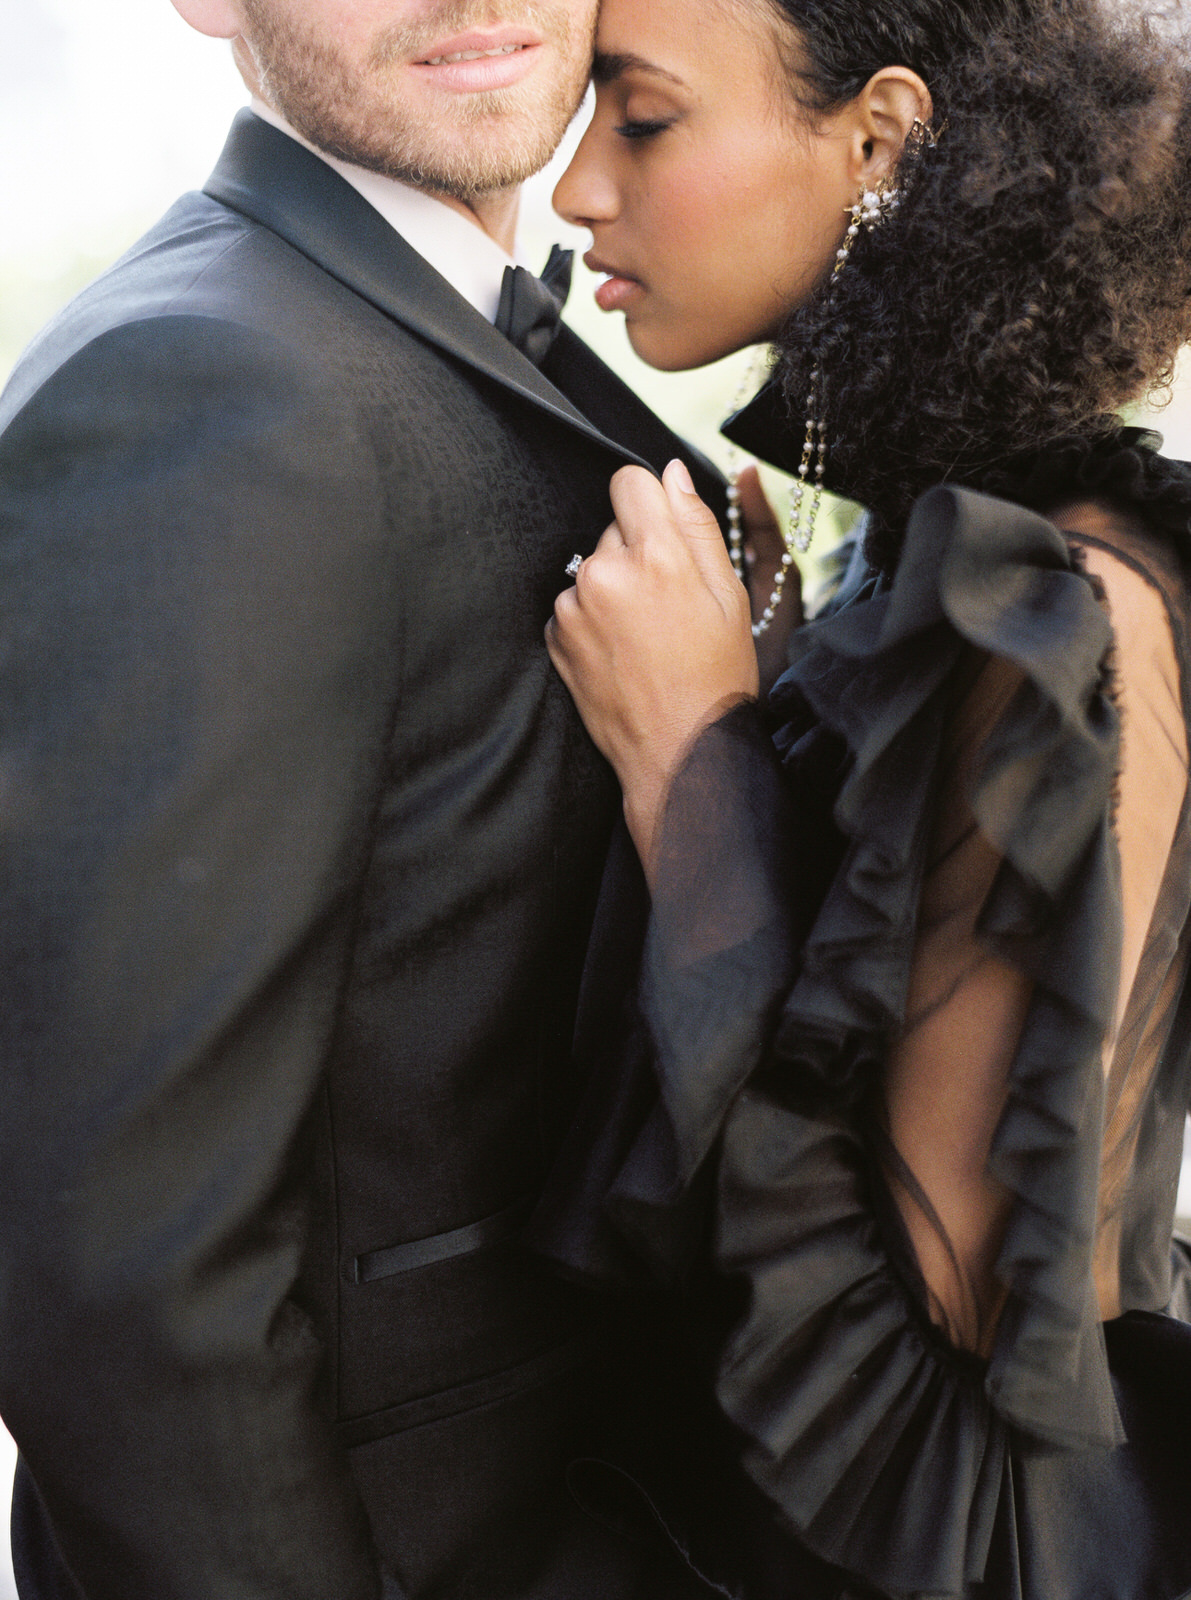 Event Planner Bespoke modern luxury and timeless experiences for stylish and elegant couples